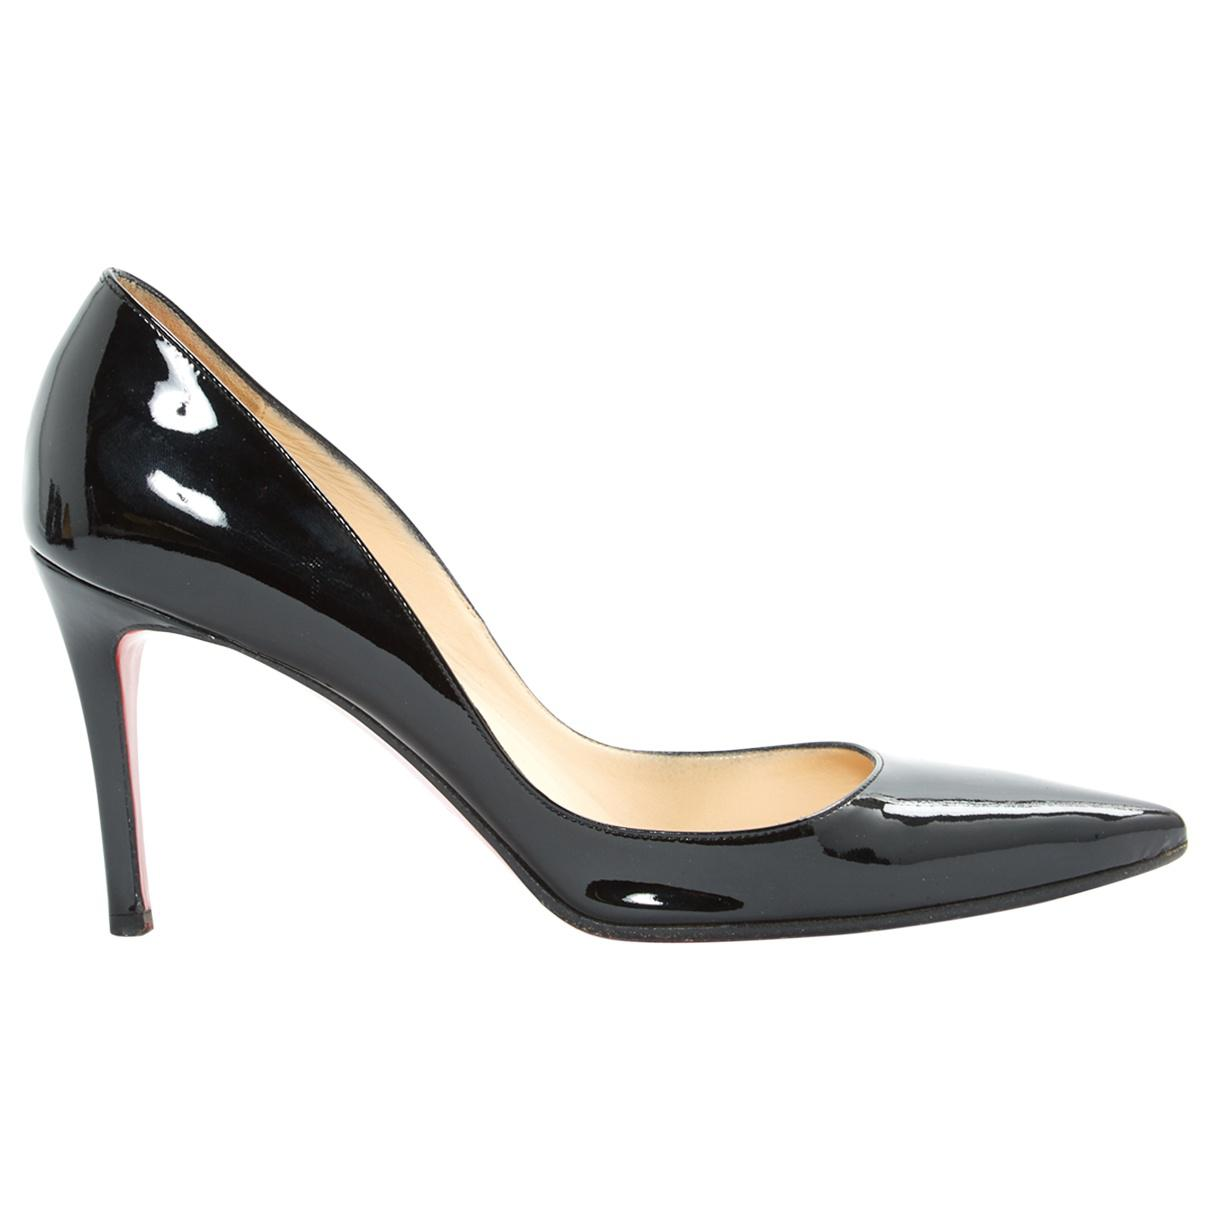 buy online 764af 189f4 Christian Louboutin Black Pre-owned Iriza Patent Leather Heels